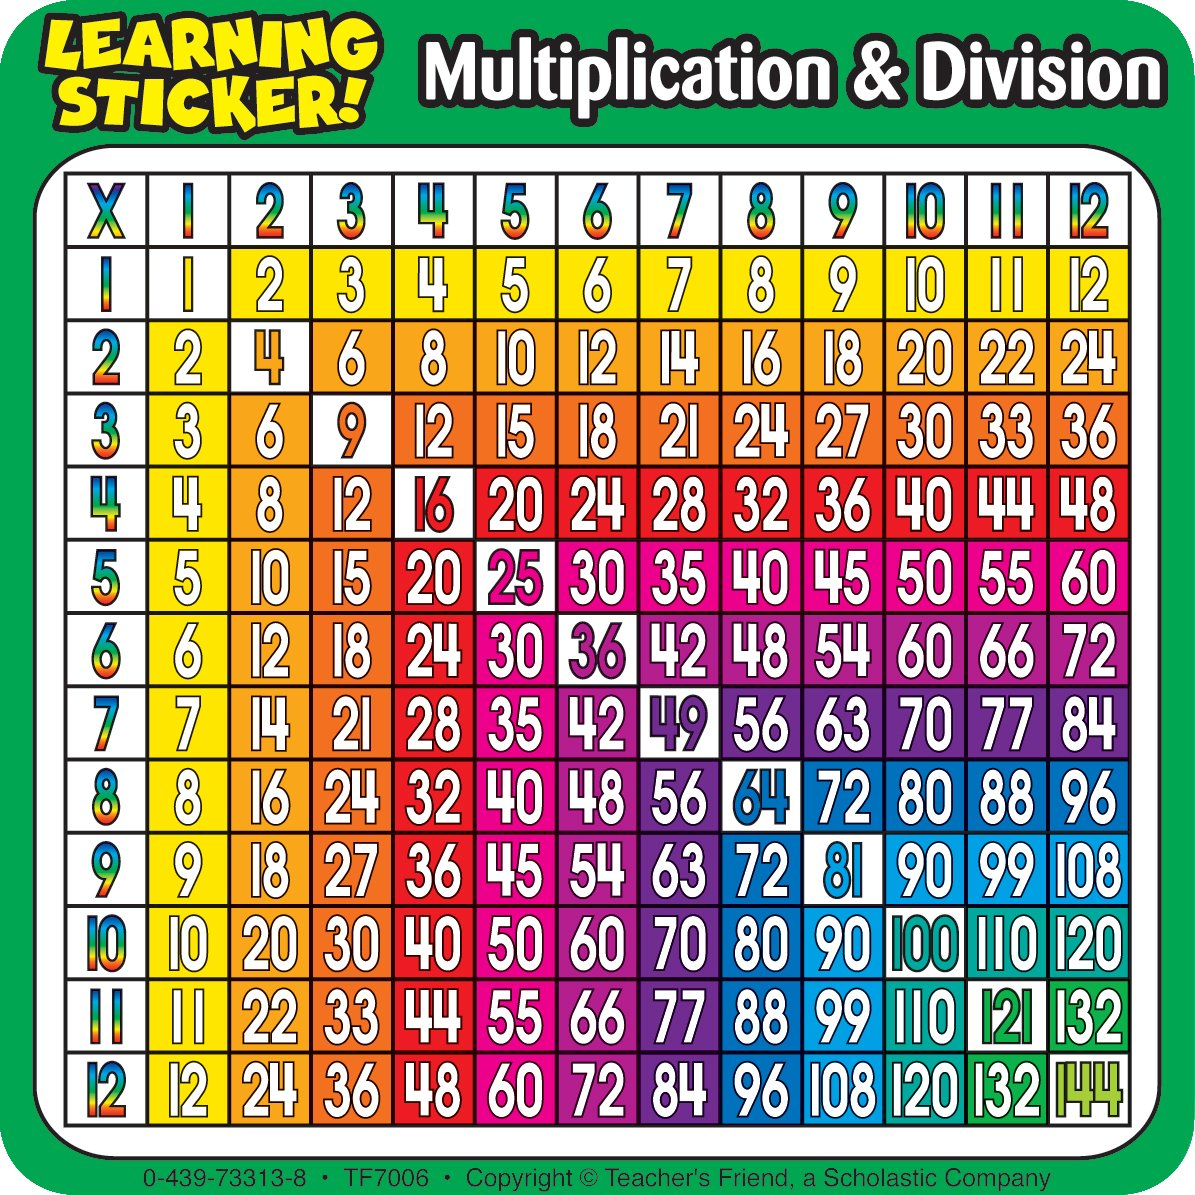 worksheet Multiplying Chart buy multiplication division learning stickers book online at low prices in india revie